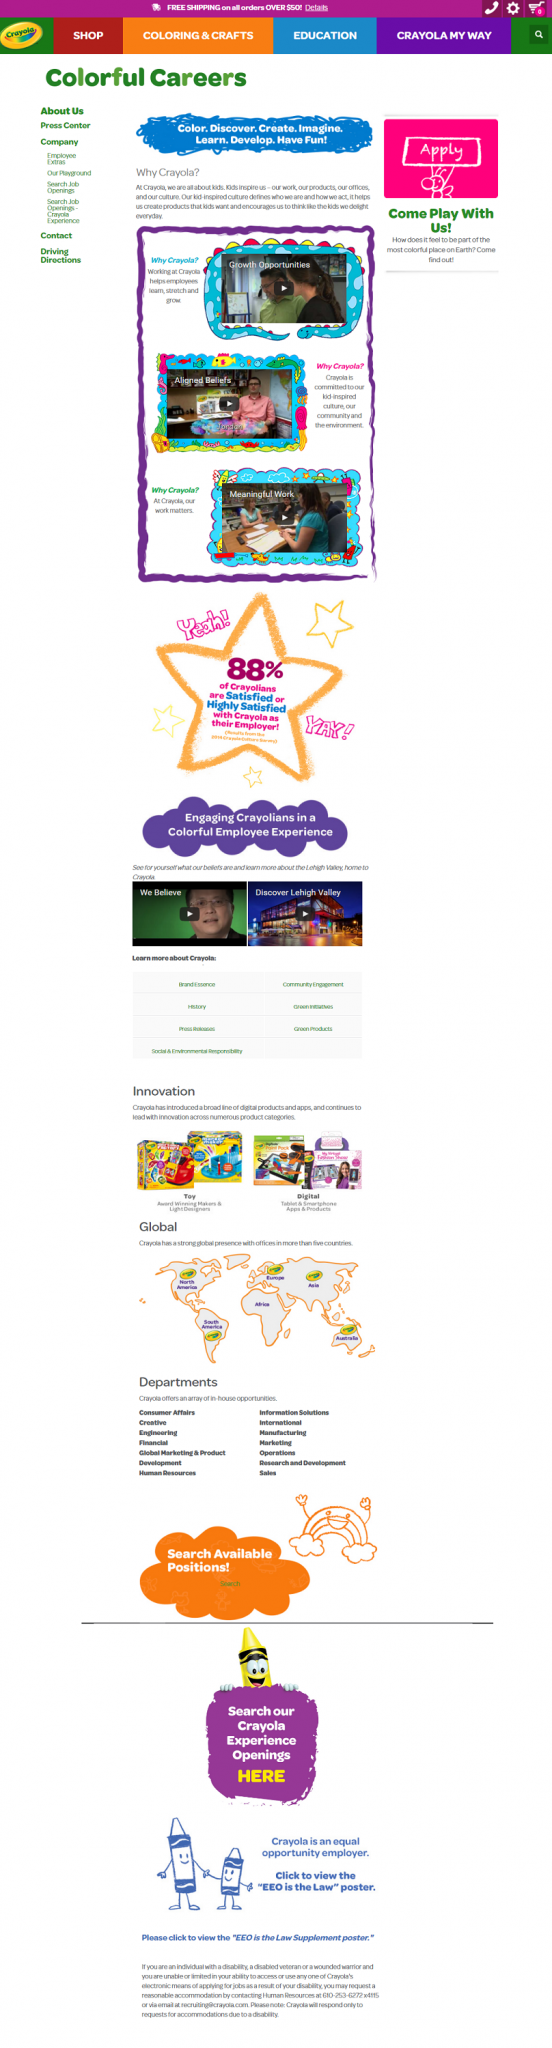 Crayola Company Career Site